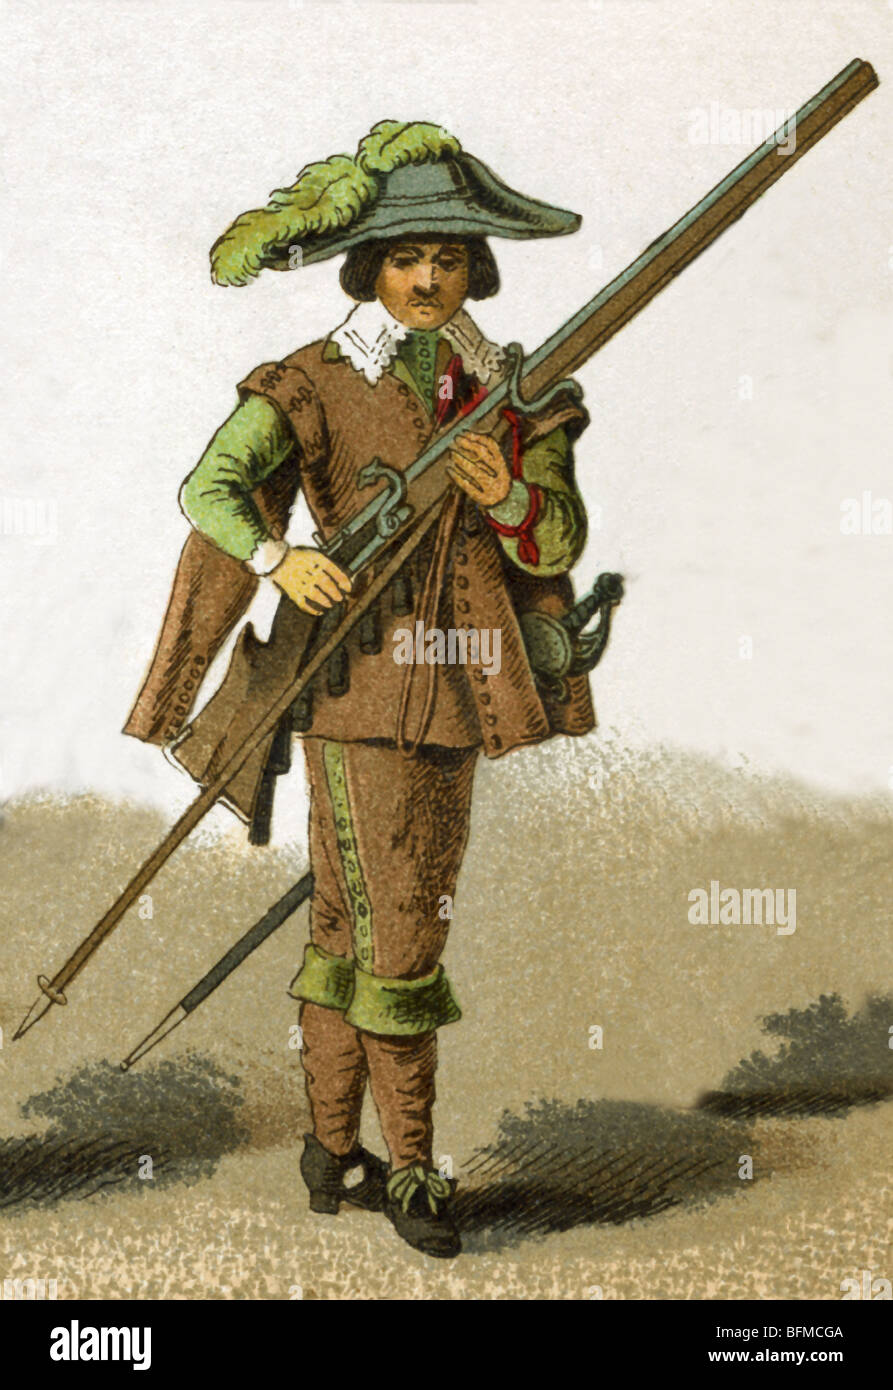 The dress of a Netherlands soldier shown in this illustration dates to 1600. This illustration dates to 1882. - Stock Image